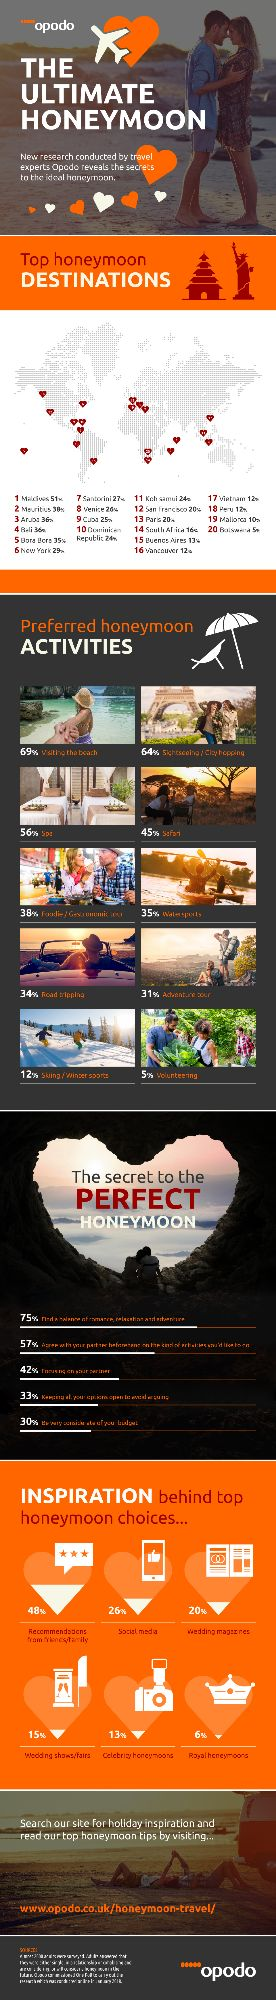 honeymoon-travel-trends